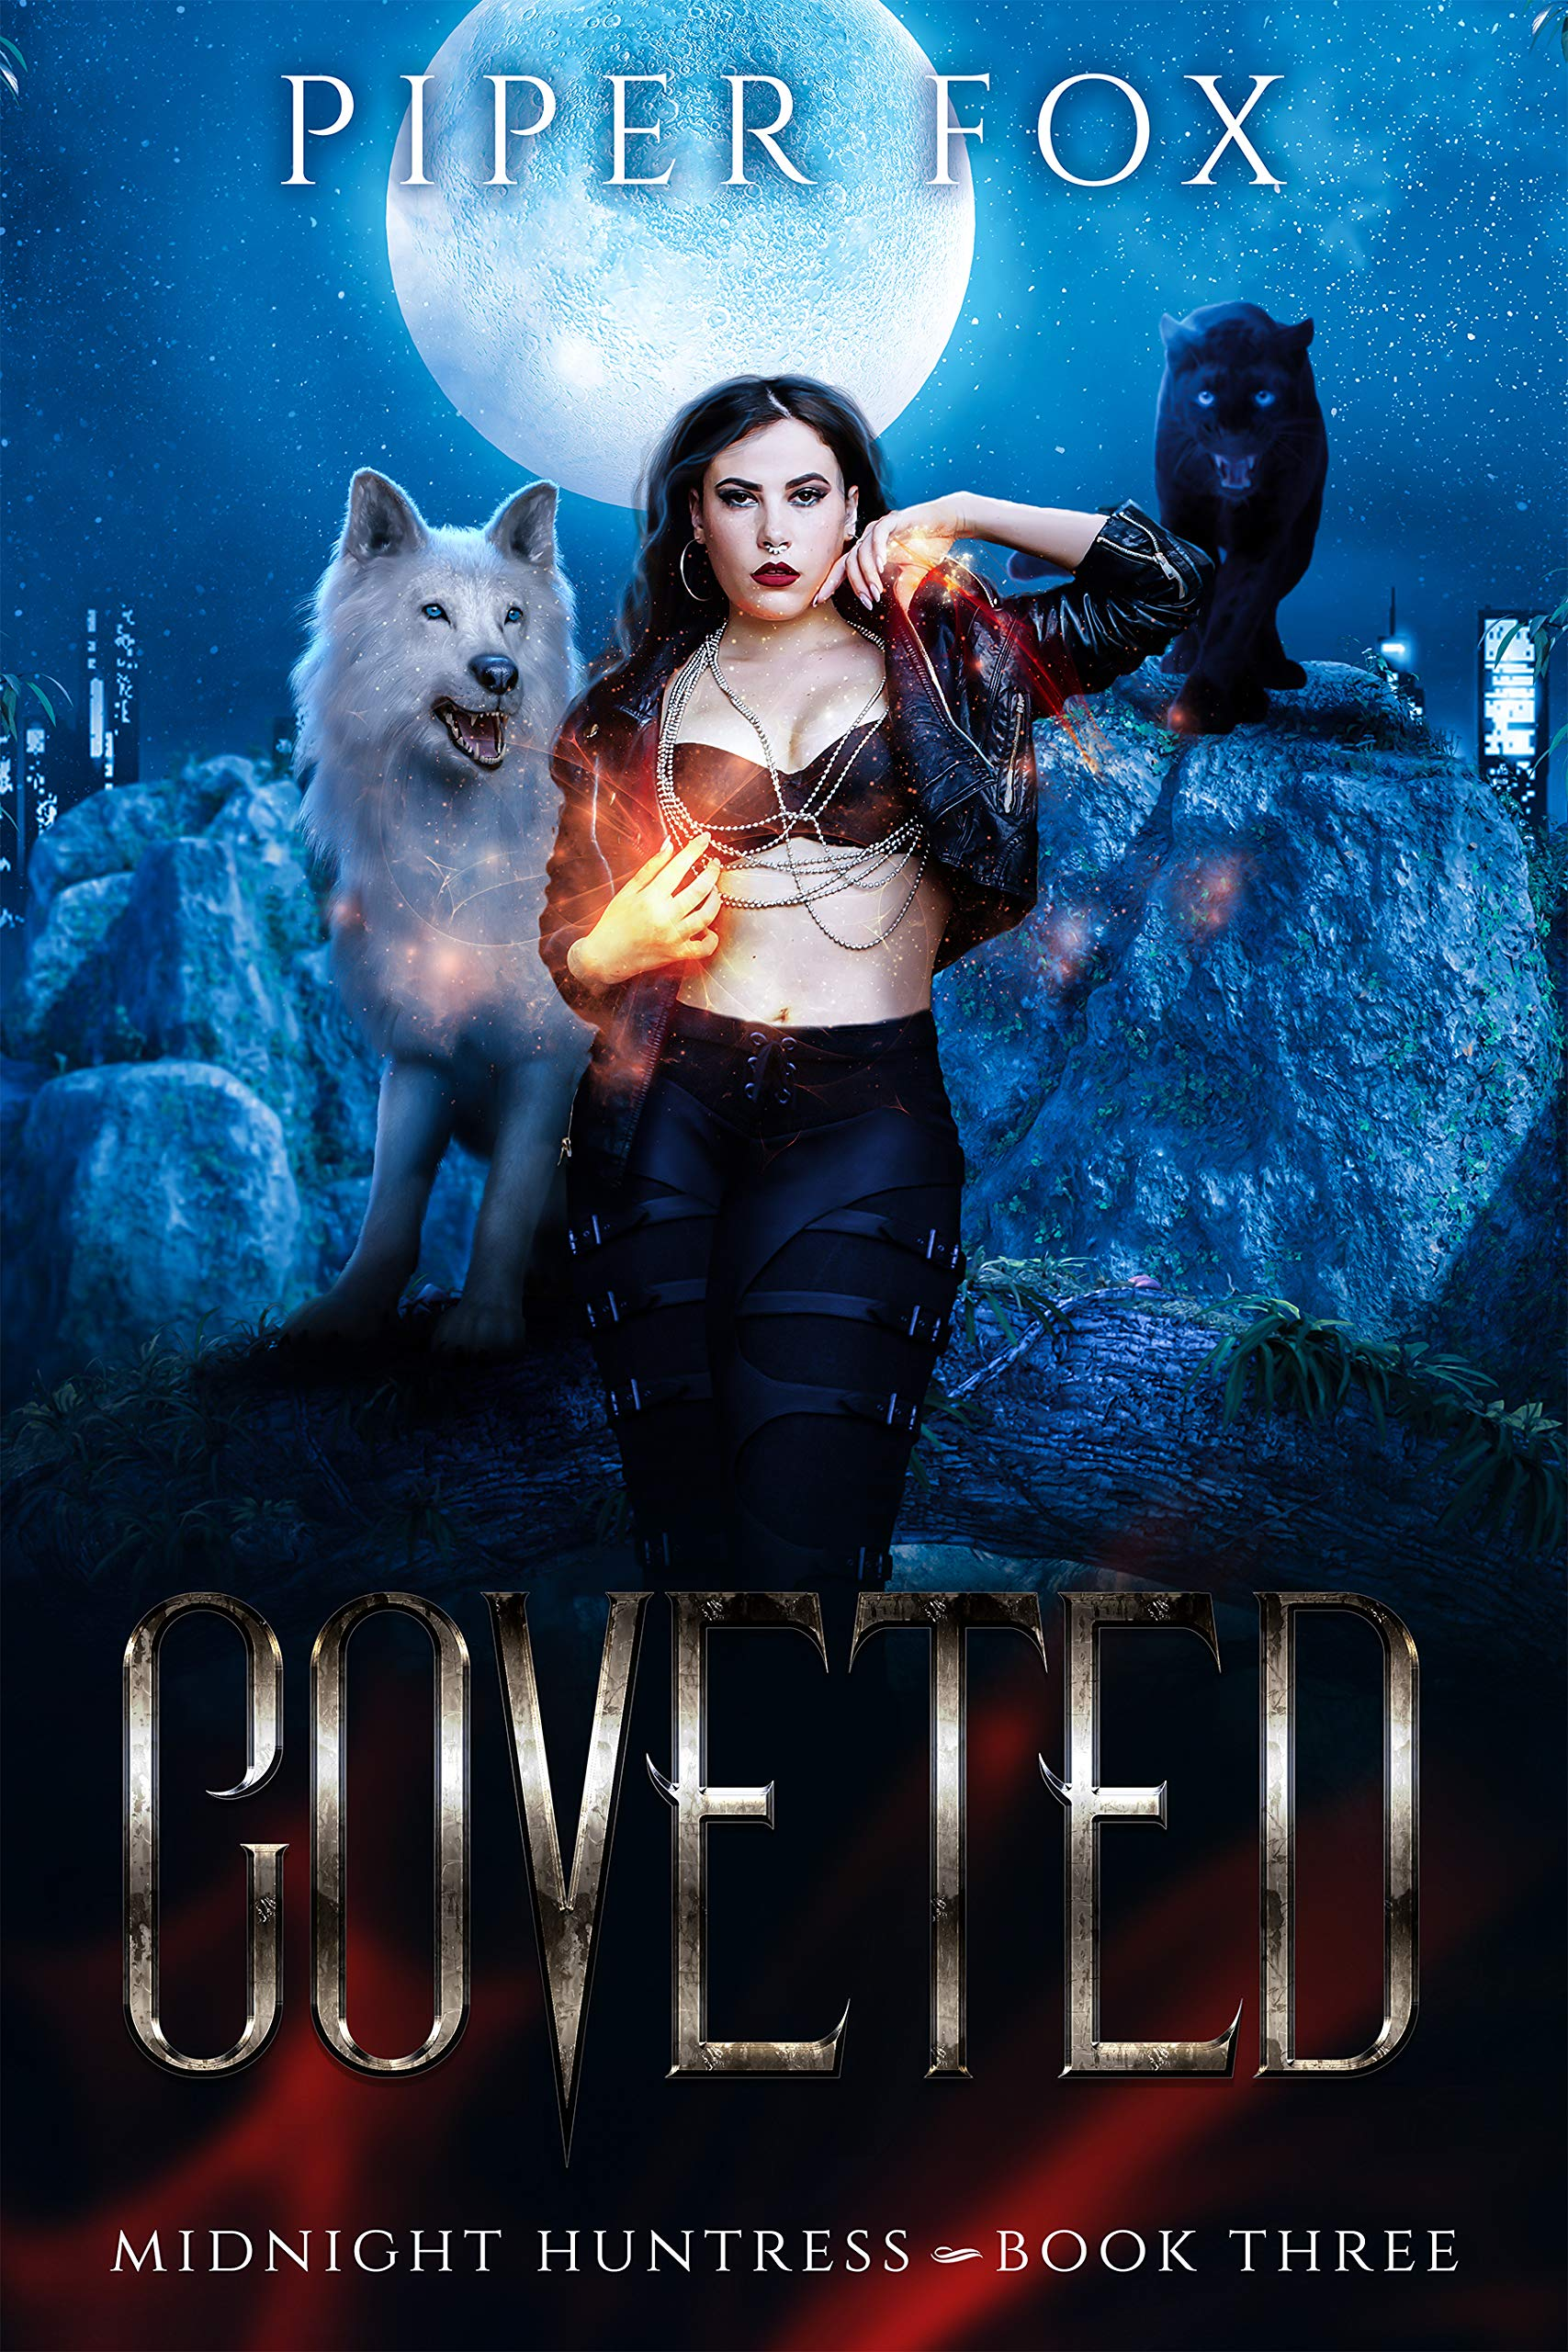 Coveted: A Paranormal Romance (Midnight Huntress Book 3)